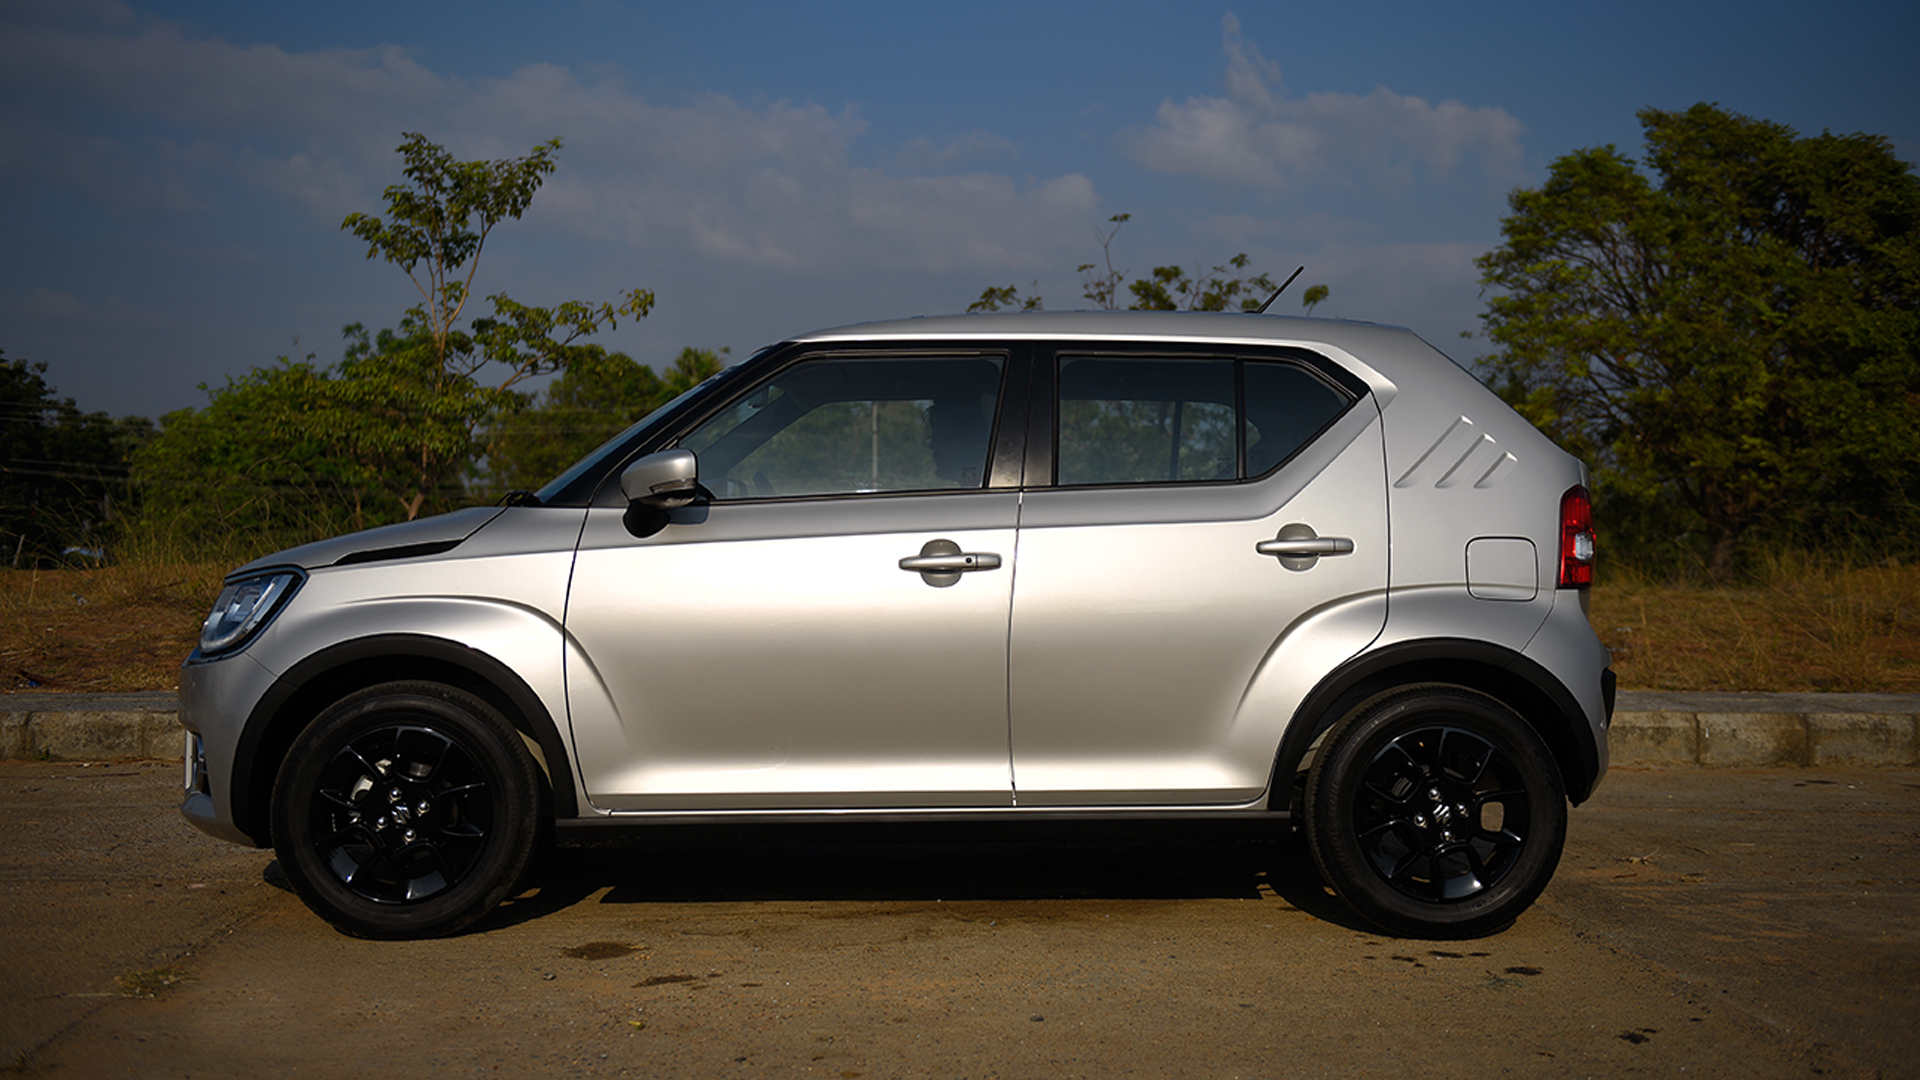 maruti suzuki ignis 2017 price mileage reviews specification gallery overdrive. Black Bedroom Furniture Sets. Home Design Ideas